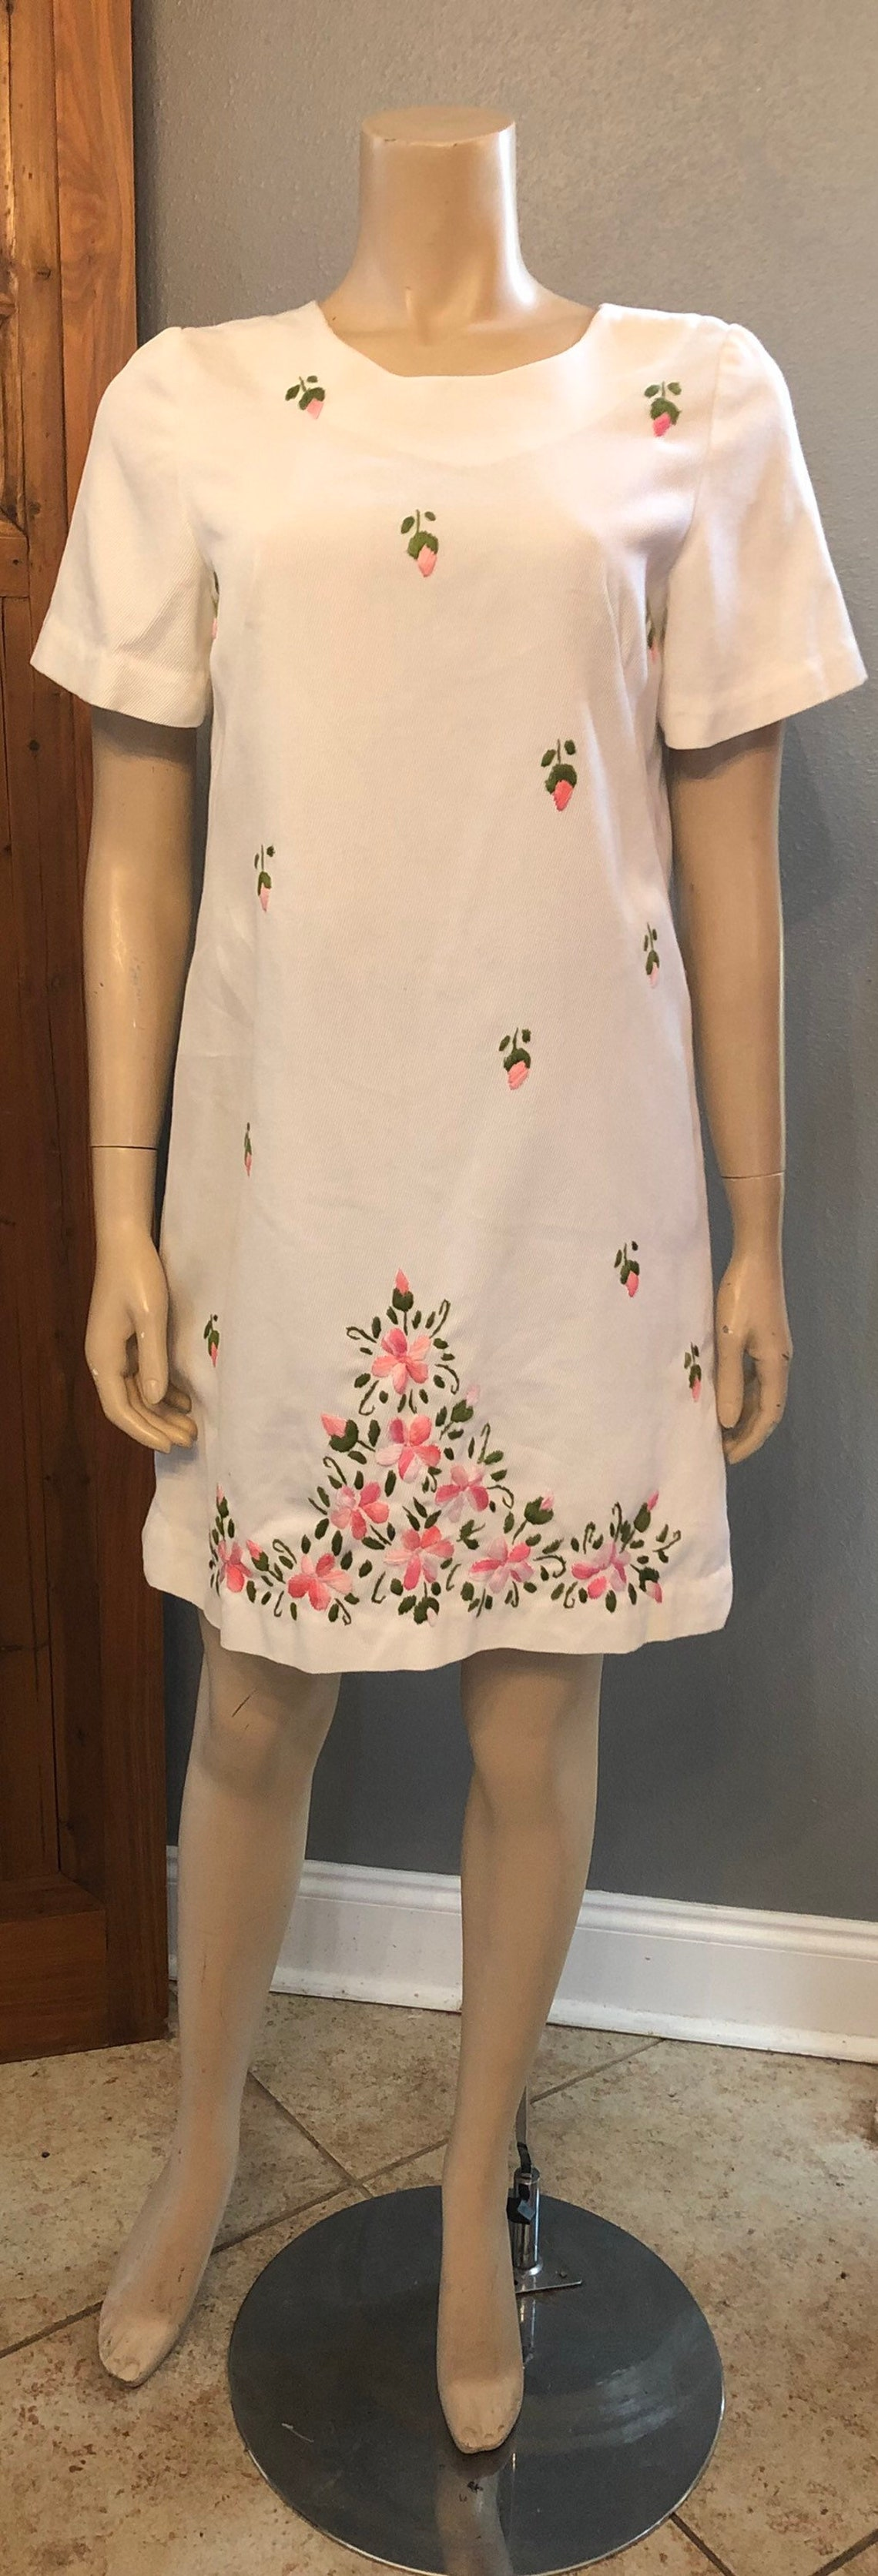 Cute Vintage 60s Mod Gogo dress with Pink Floral Embroidery /